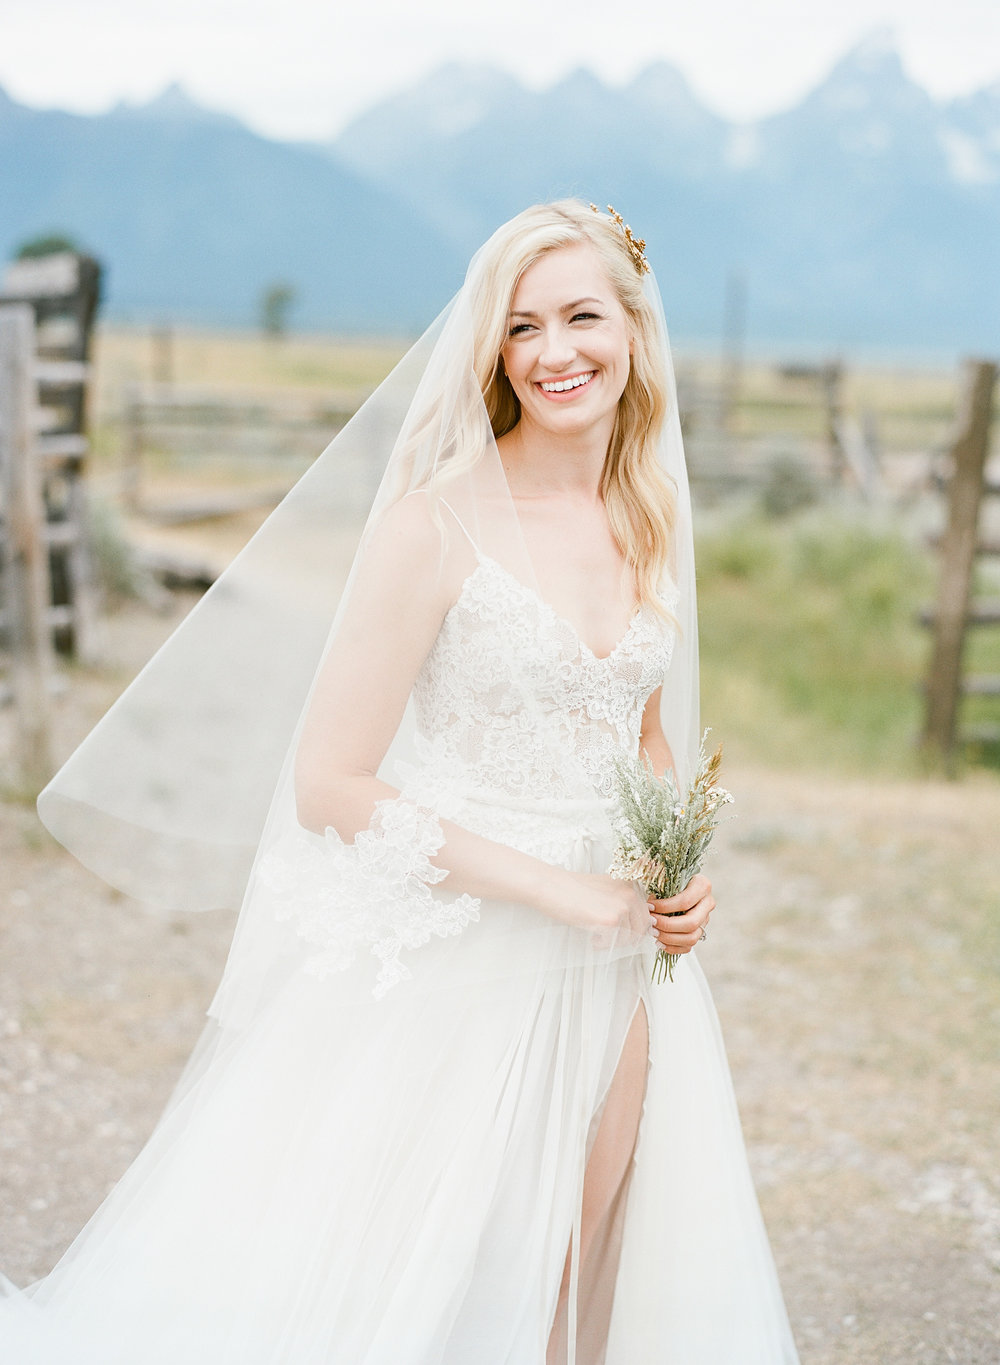 Beautiful country bride, wildflower bouquet, Monique Lhuillier gown, Sylvie Gil Photography